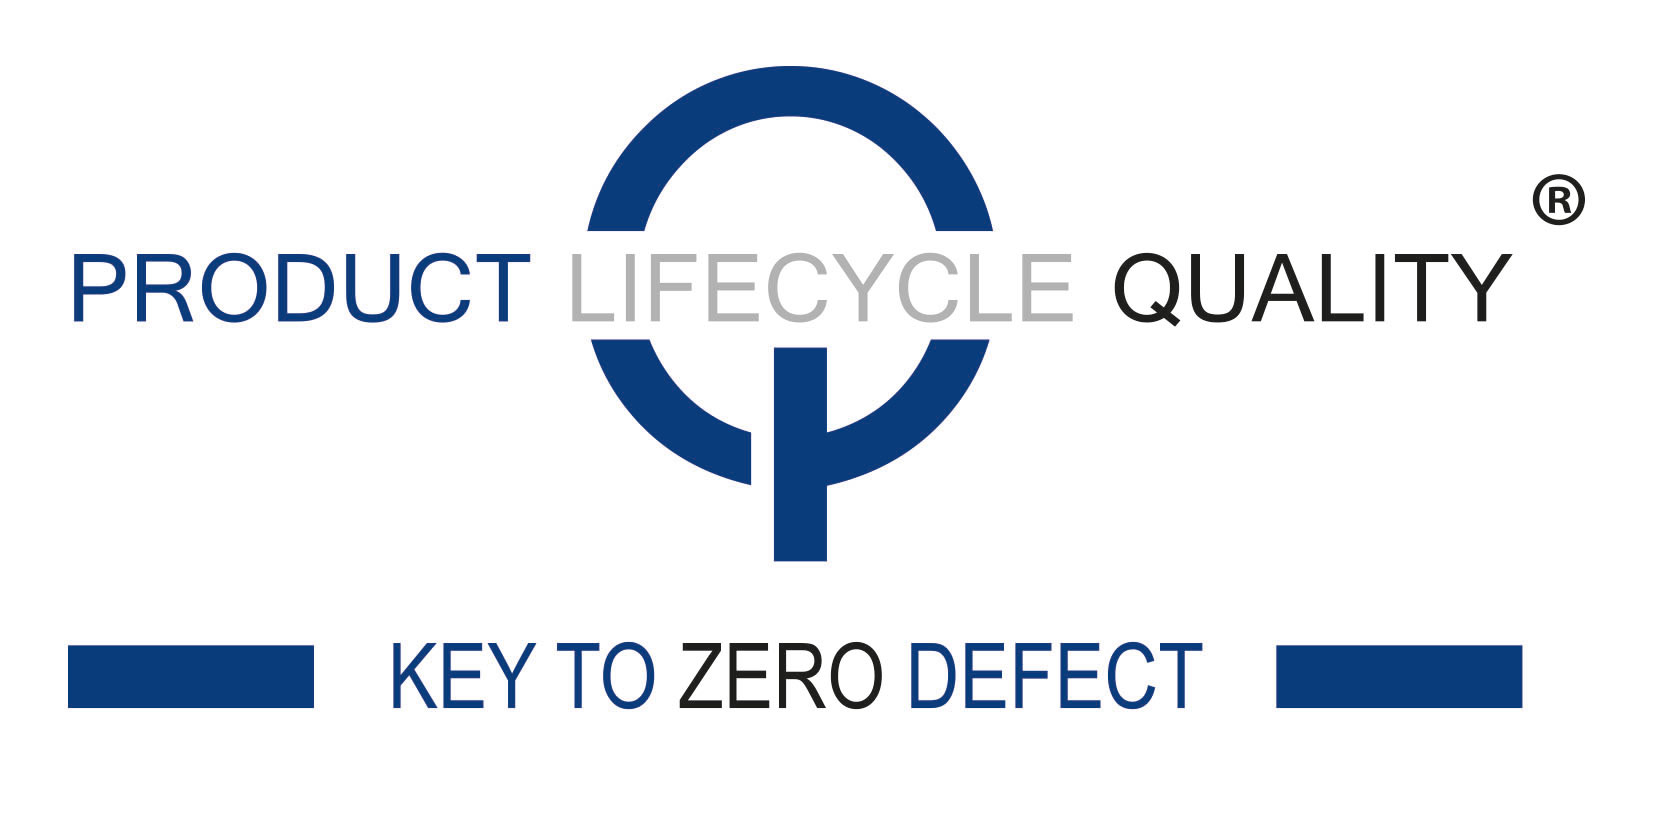 roduct Lifecycle Quality